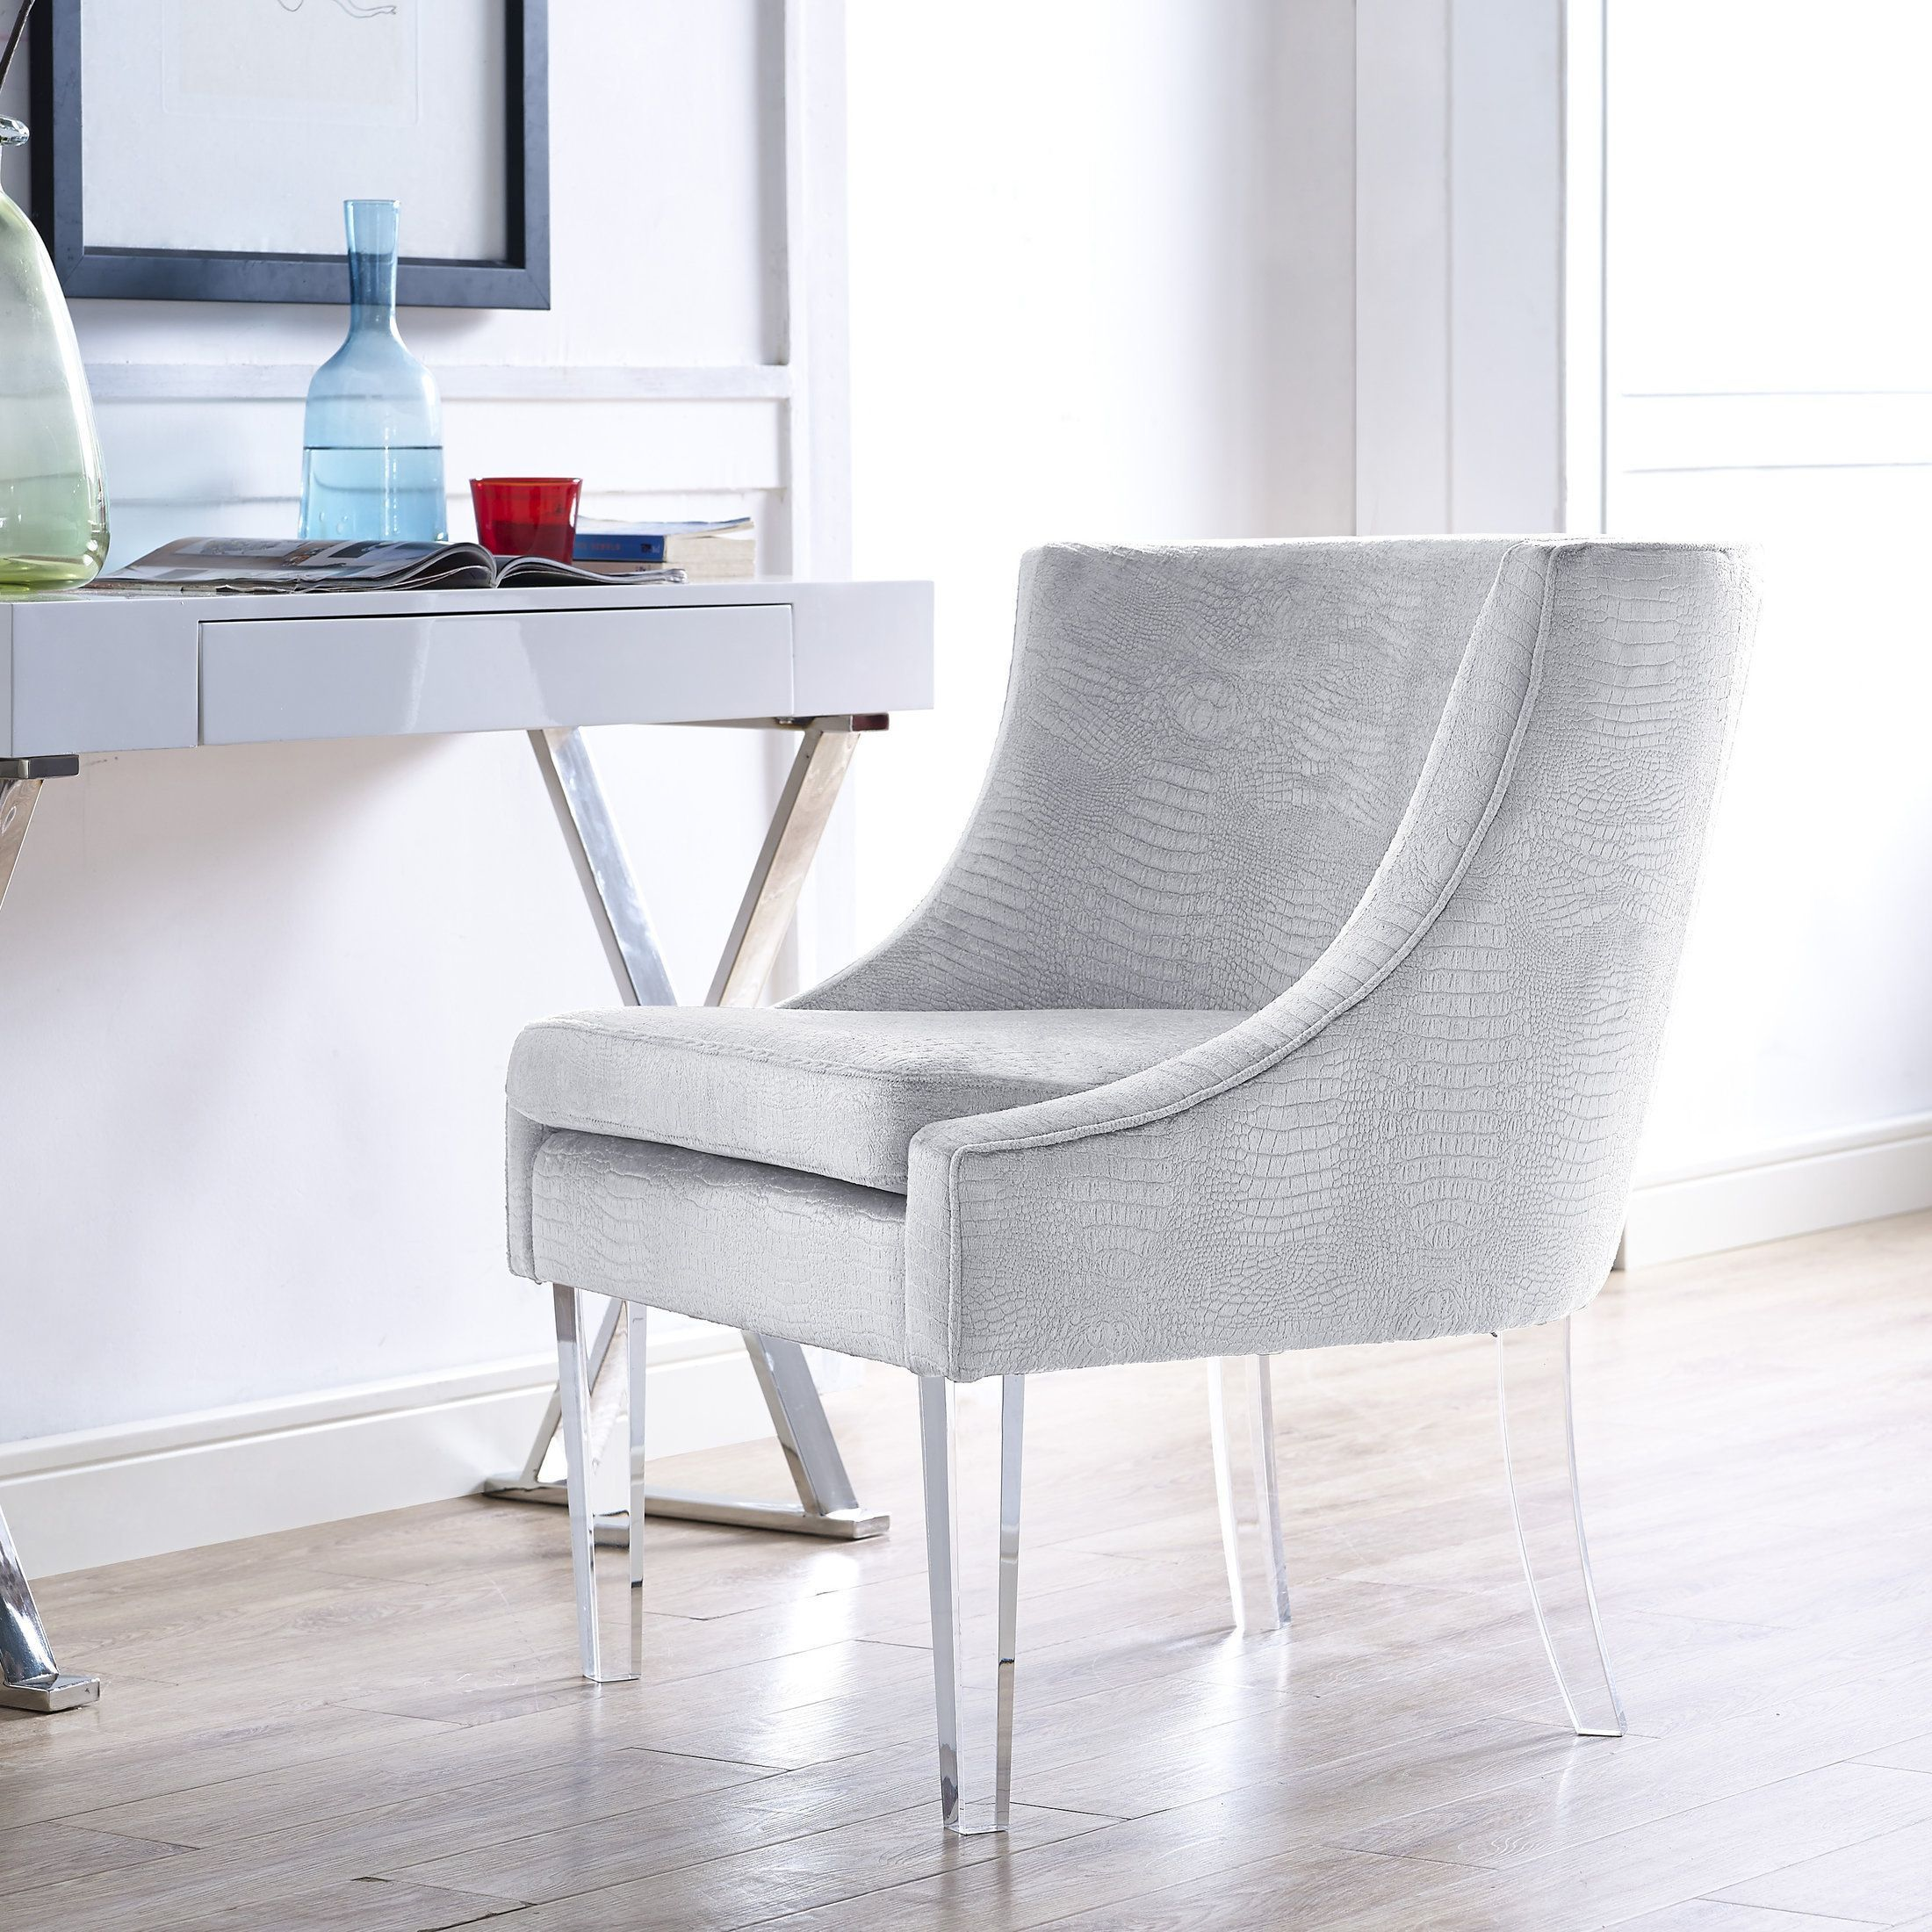 Enjoy The Sumptuous Soft Velvet Upholstery And Tall Lucite Legs Of This  Subtle And Stunning Myra Silver Croc Chair. Classy Yet Stylish, The Myra  Chair Is ...